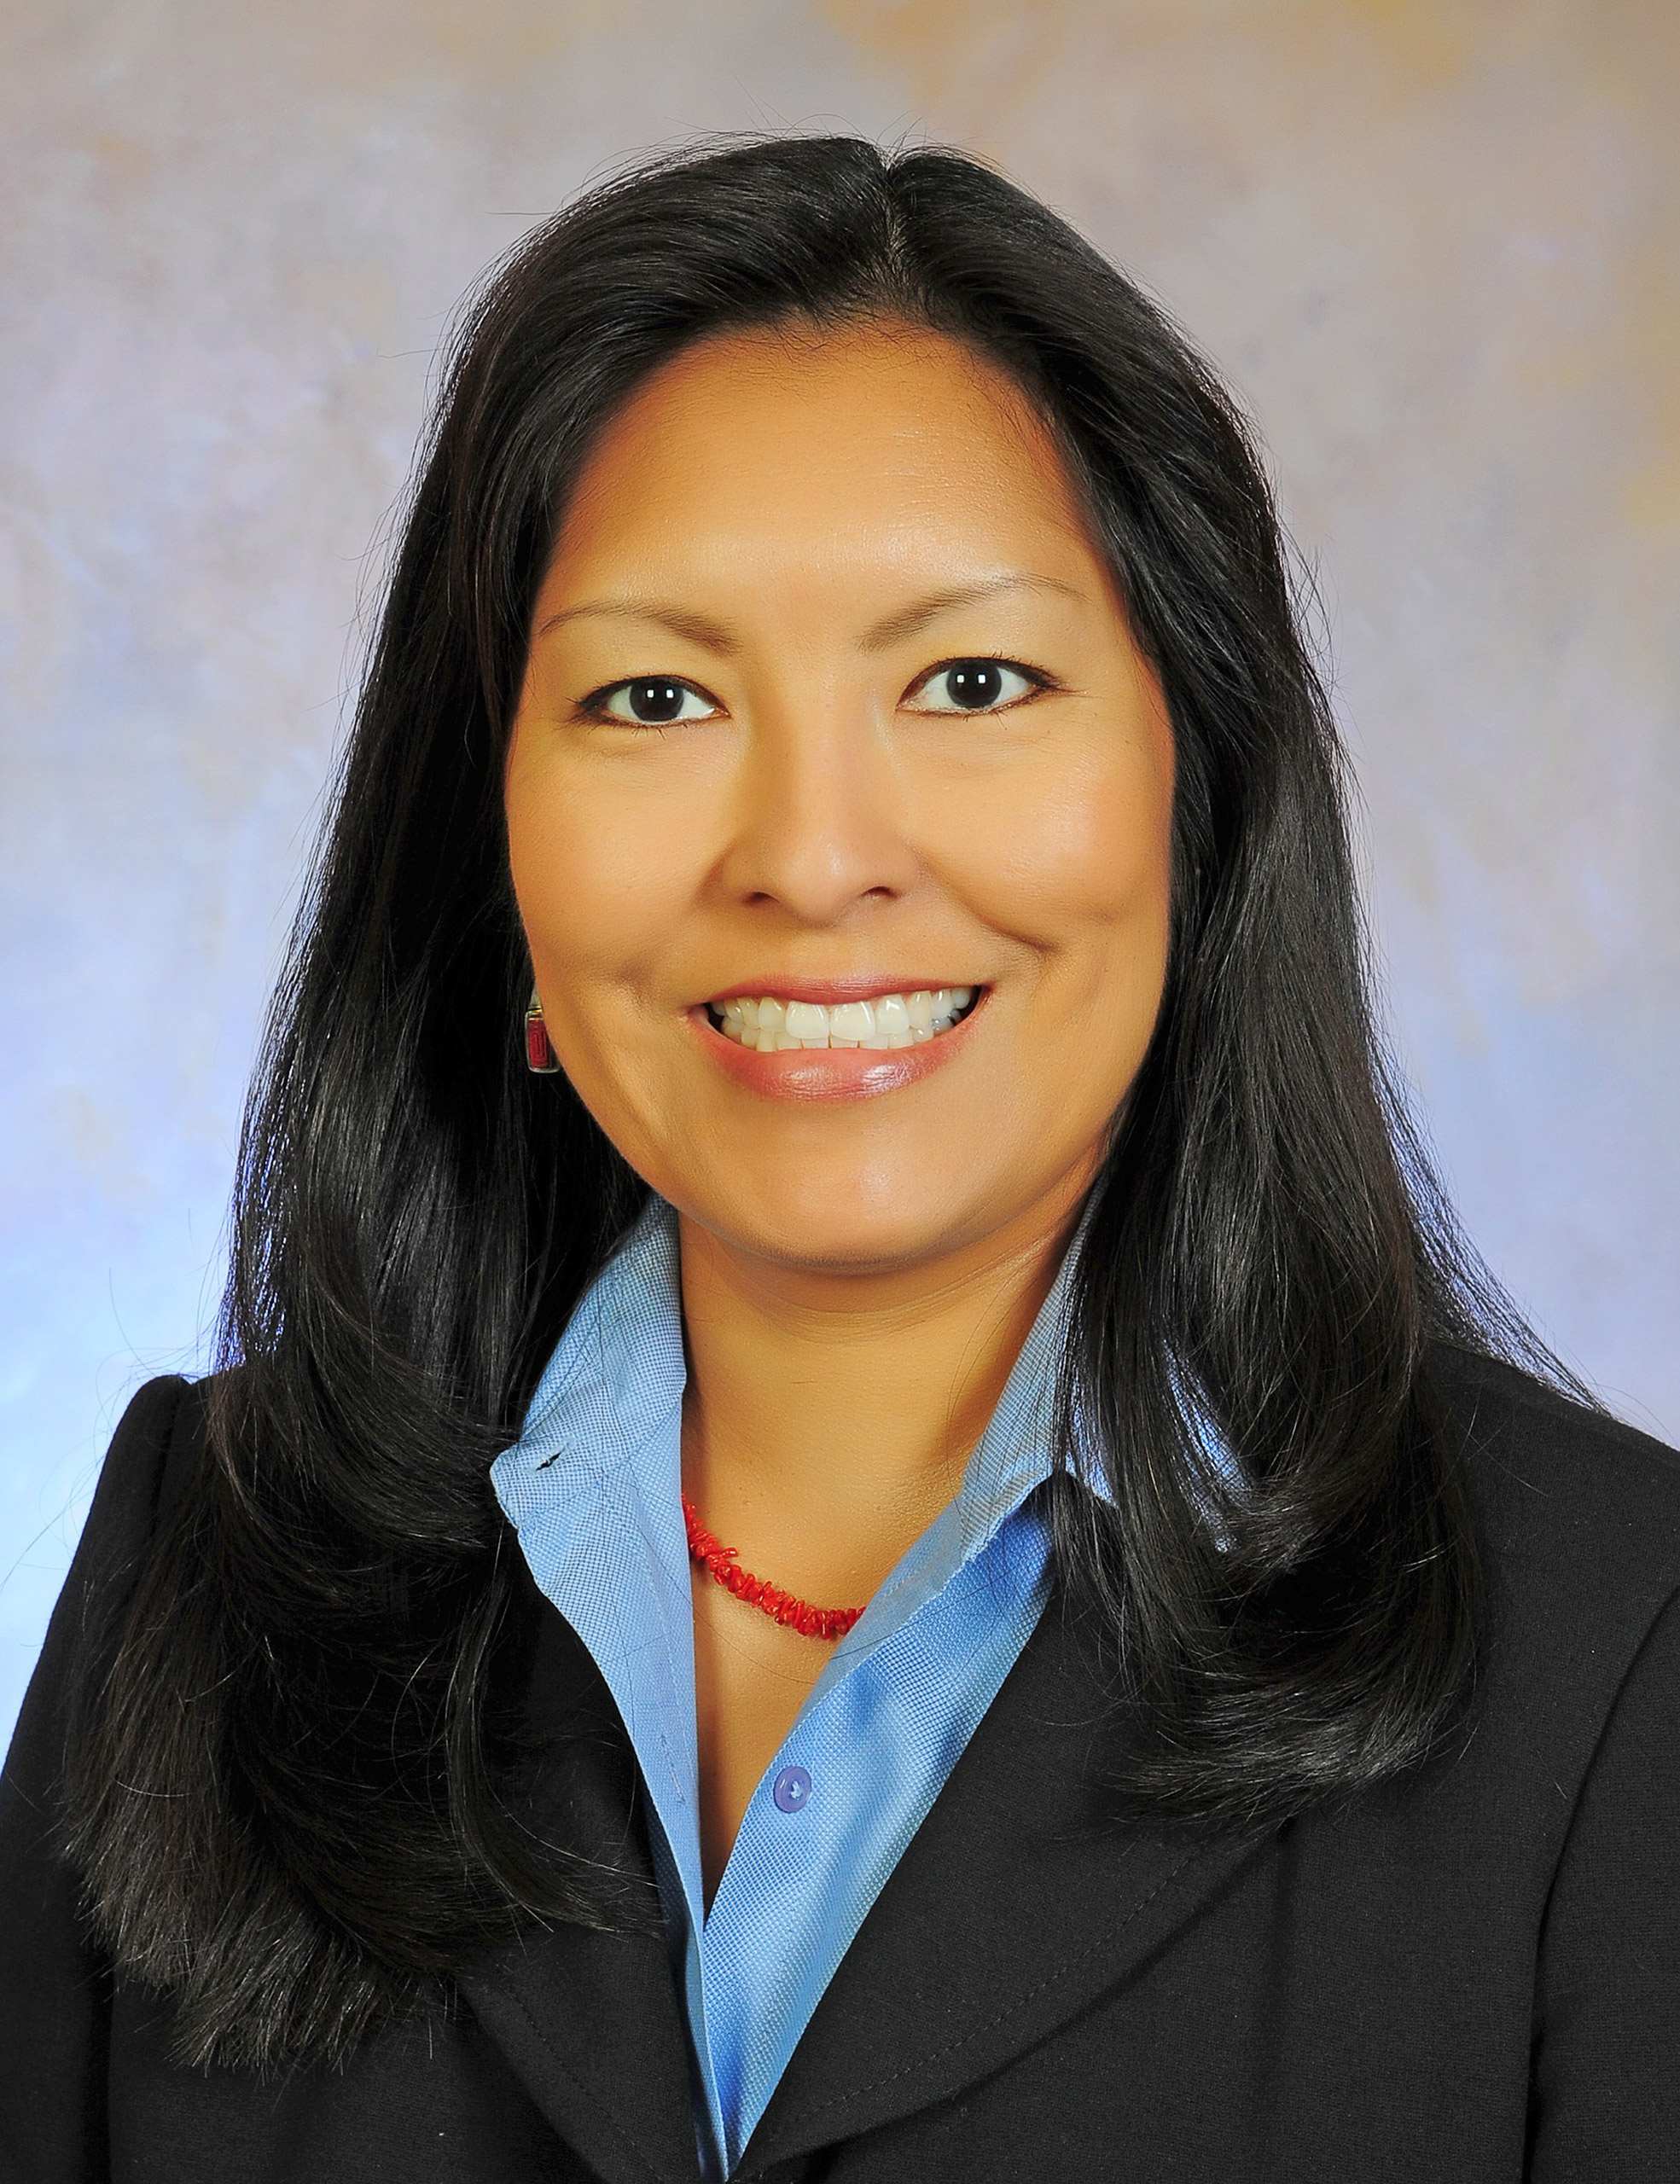 Diane Humetewa, the first female Native American federal judge. Humetewa is a member of the Hopi tribe and has served as an Appellate Court Judge for the Hopi Tribe Appellate Court.